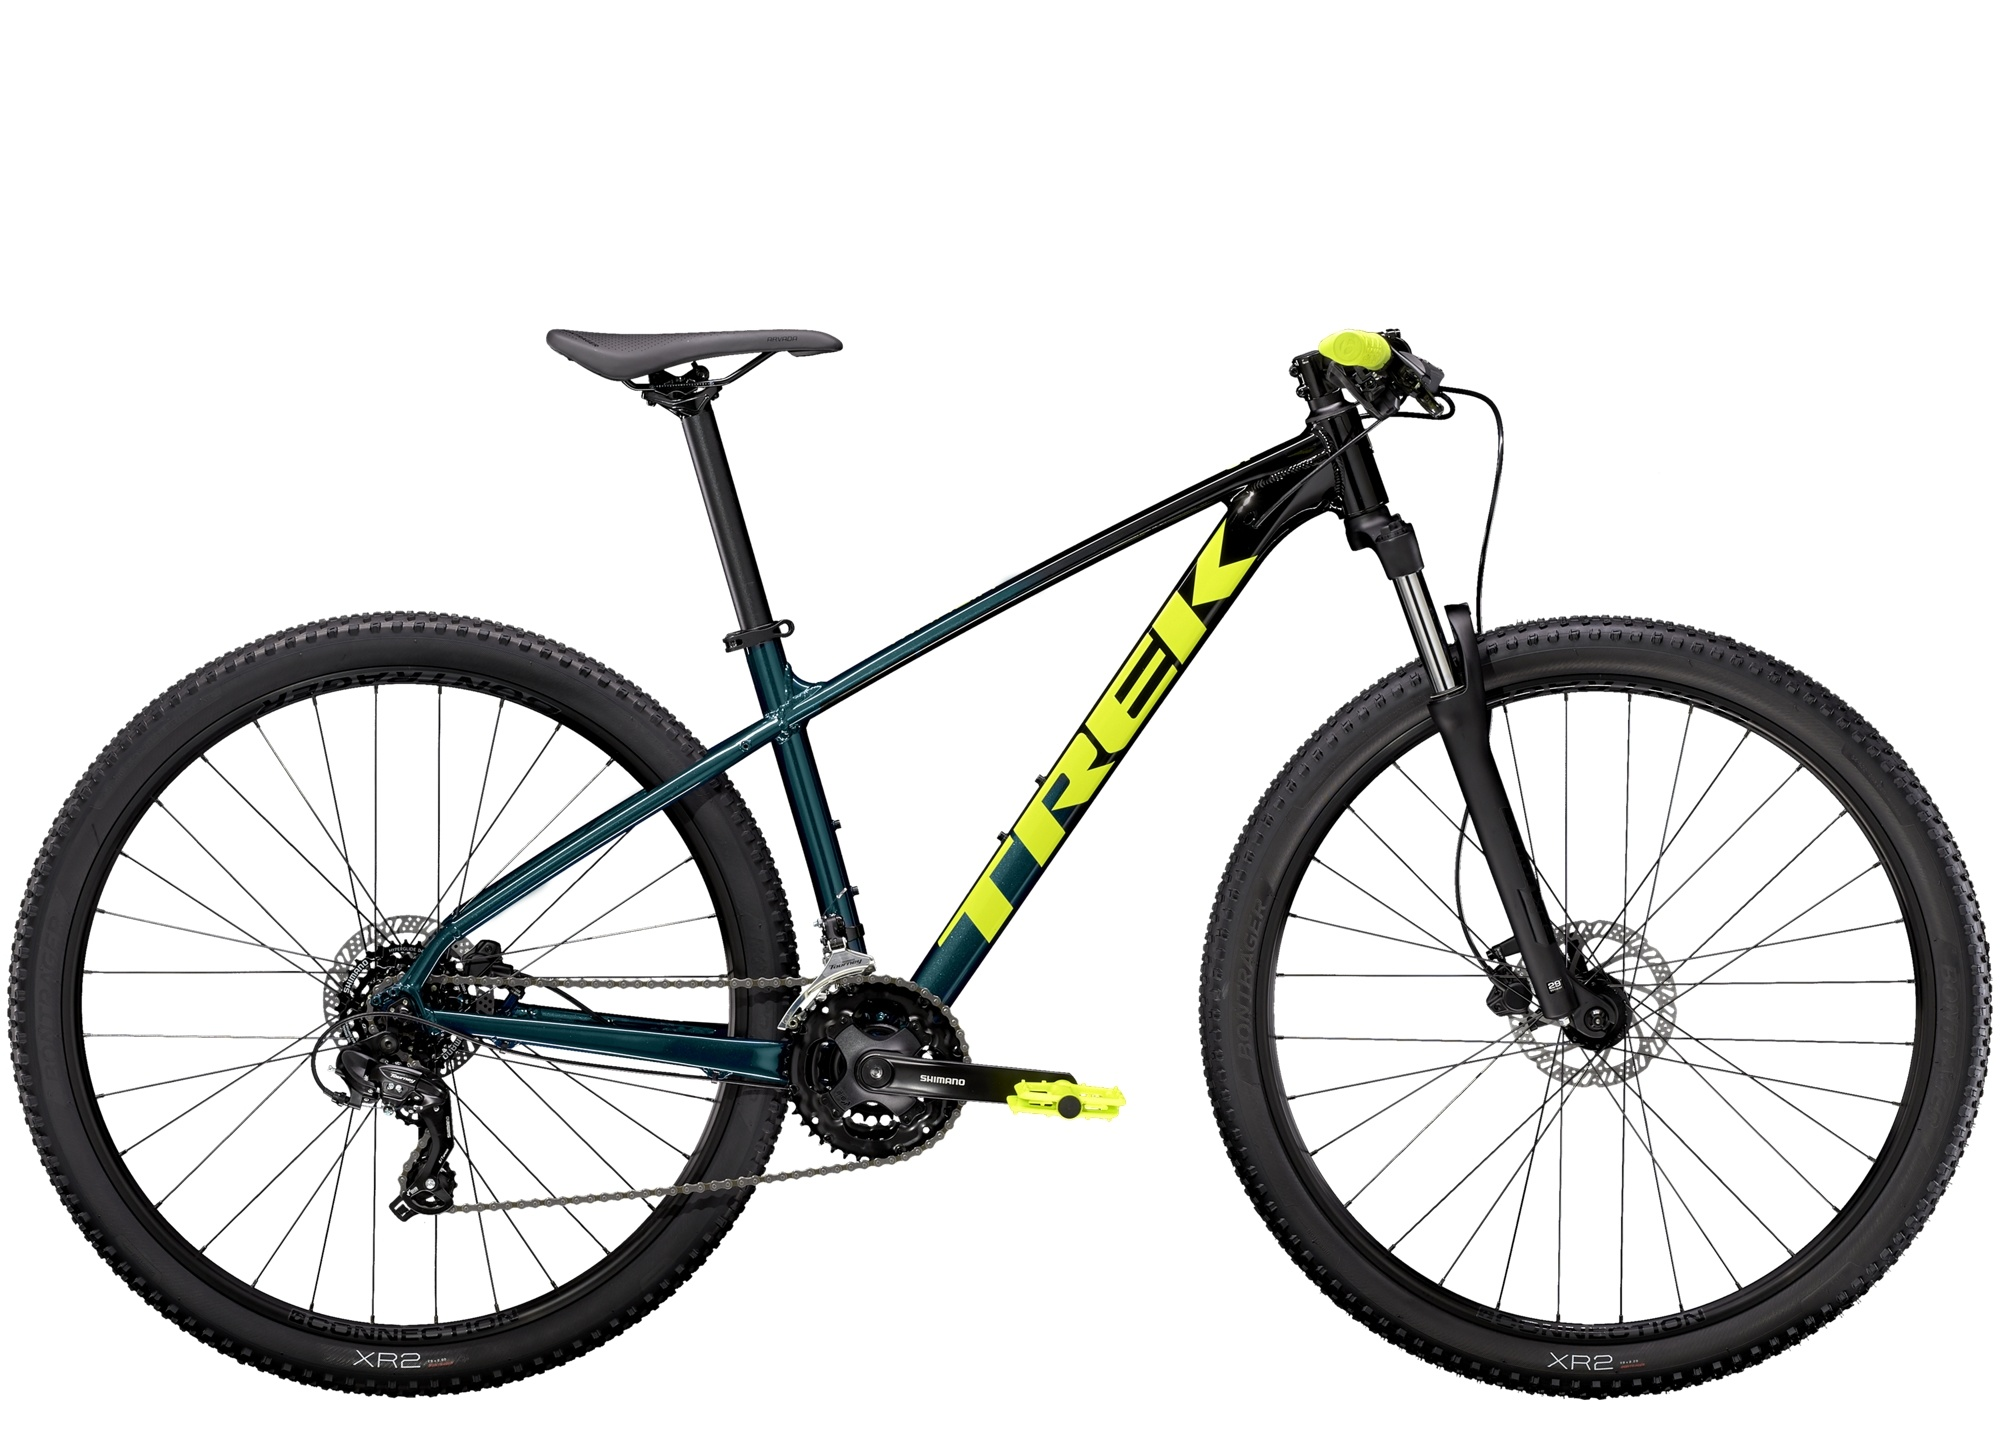 Marlin 5 S 27.5 Dark Aquatic/Trek Black